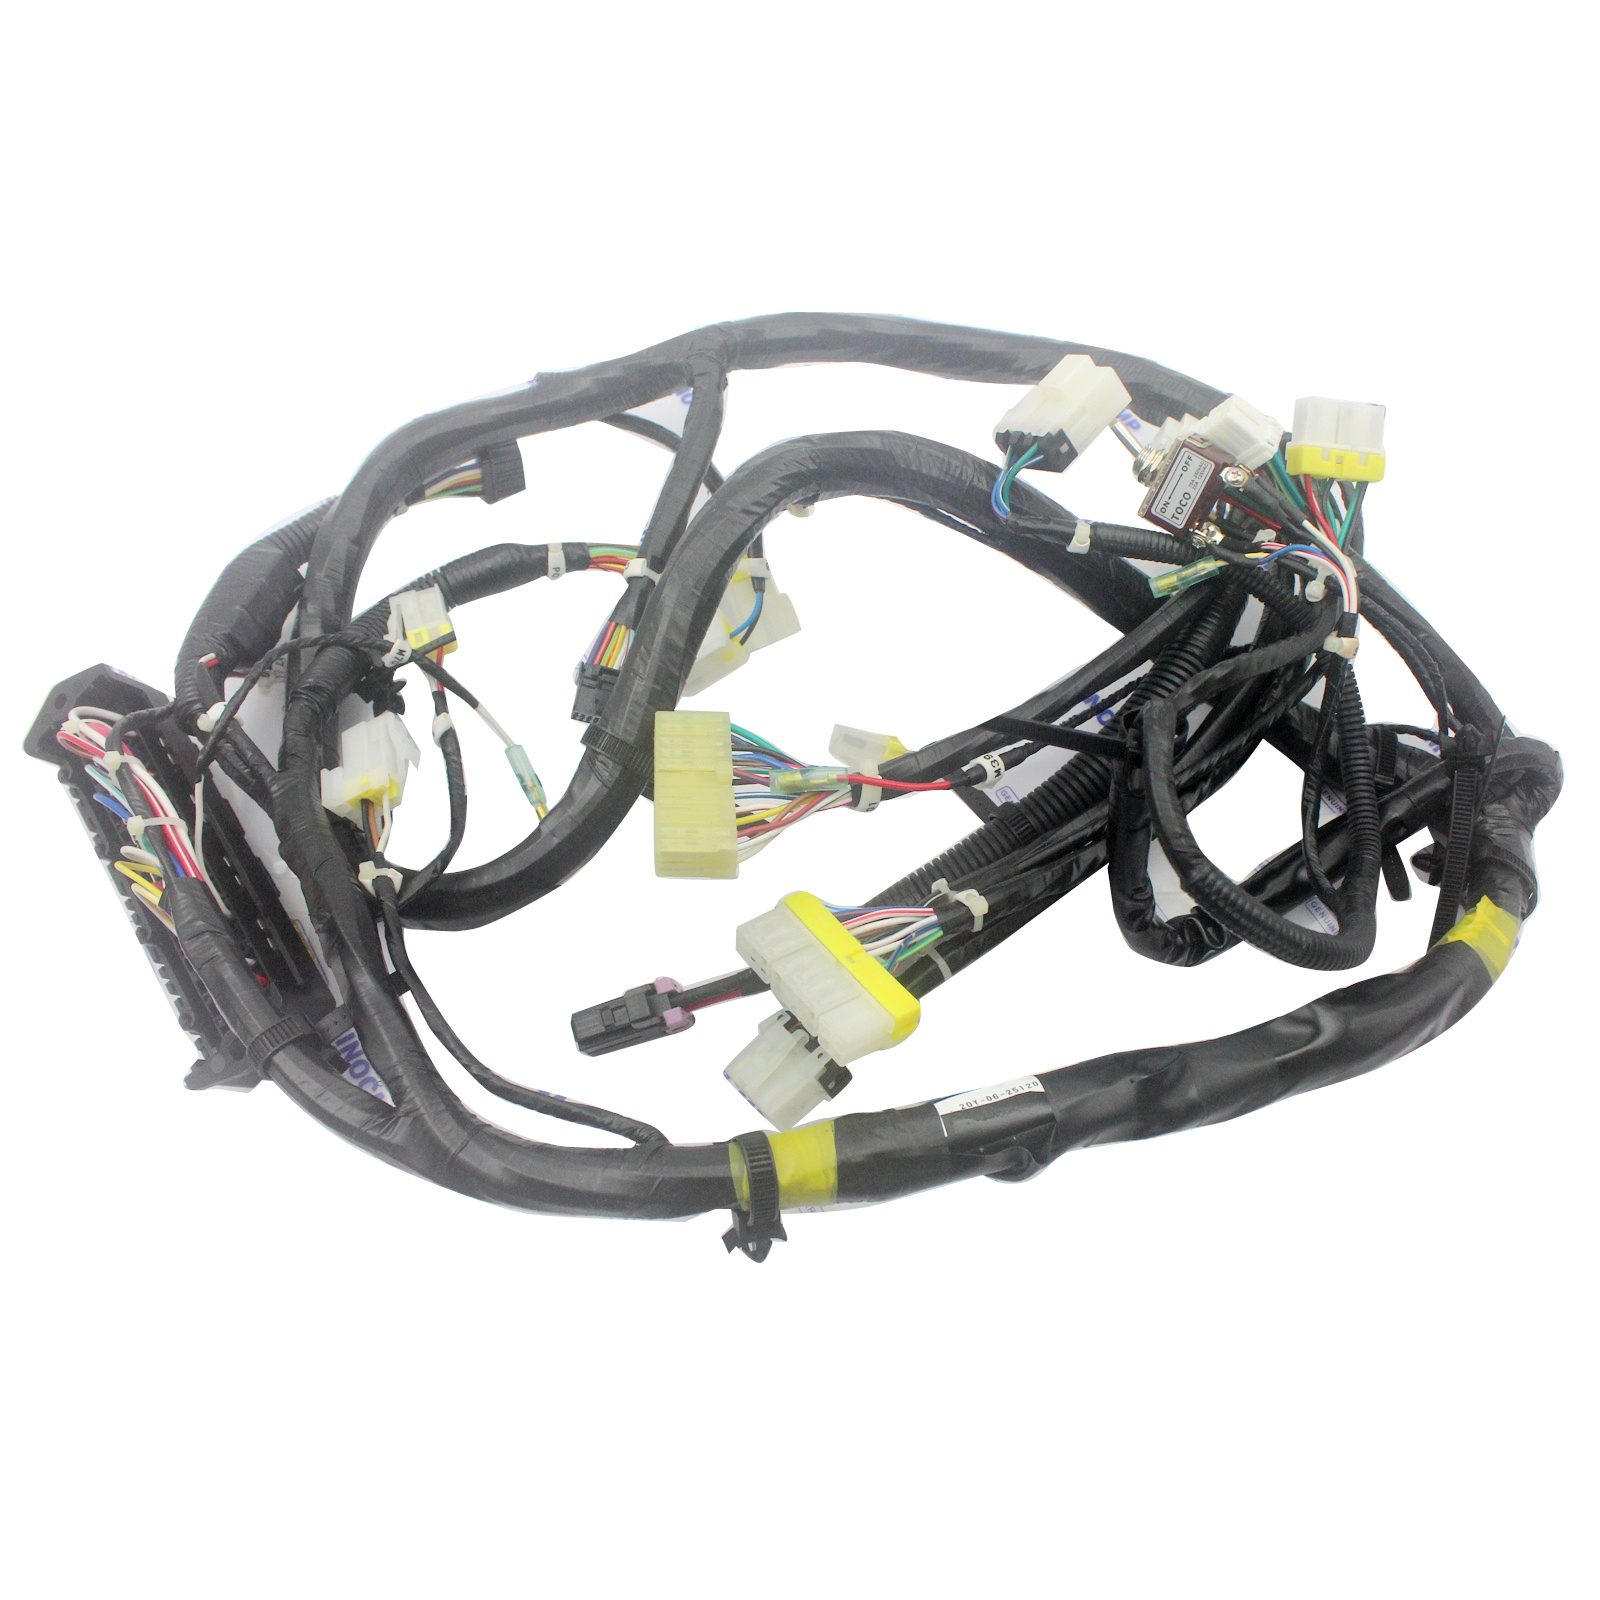 Komatsu Excavator Electrical Schematic Diagram Wiring And Excavators 20y 06 23980 Internal Cabin Harness For Pc200 6 Pc120